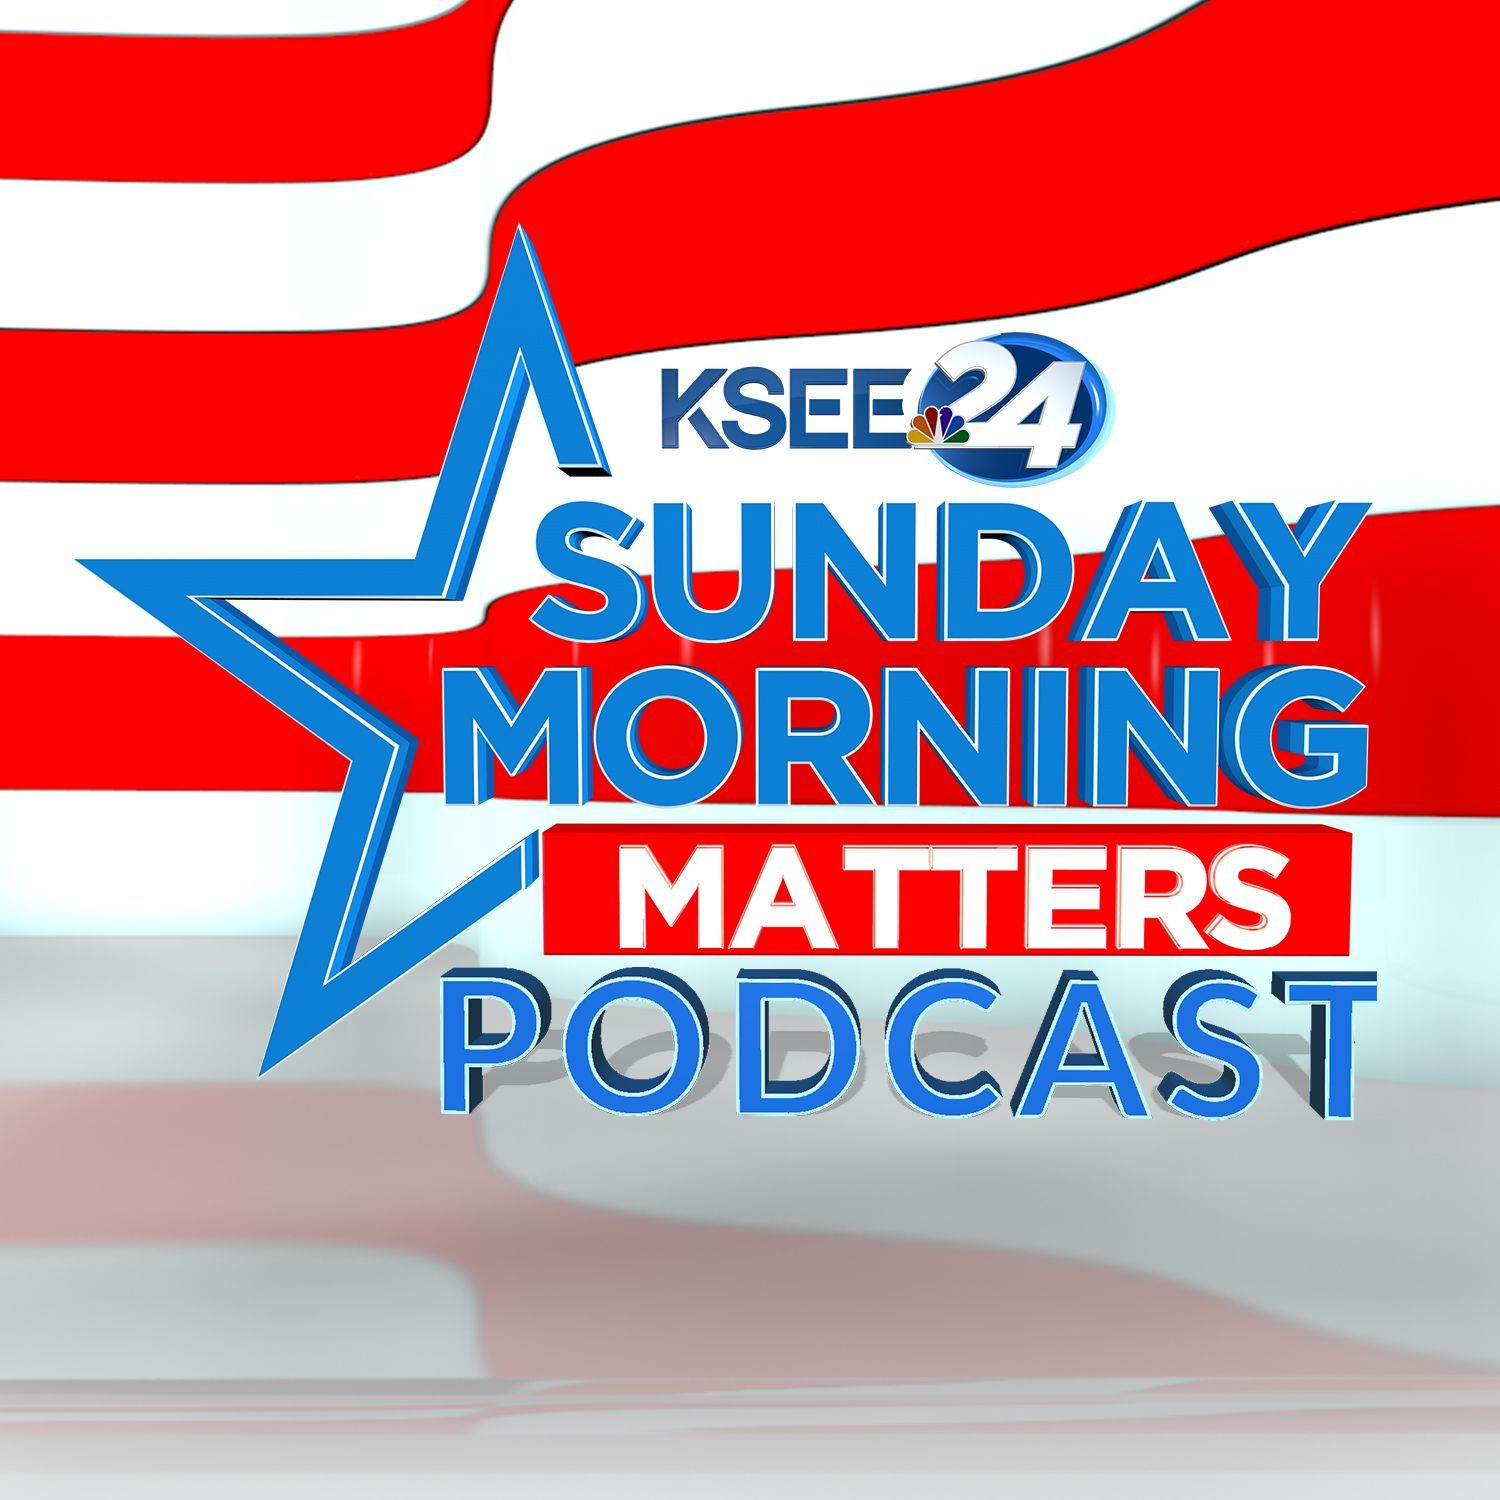 043: Presidential candidate Matt Matern and the panel reflects on the big political stories of 2019